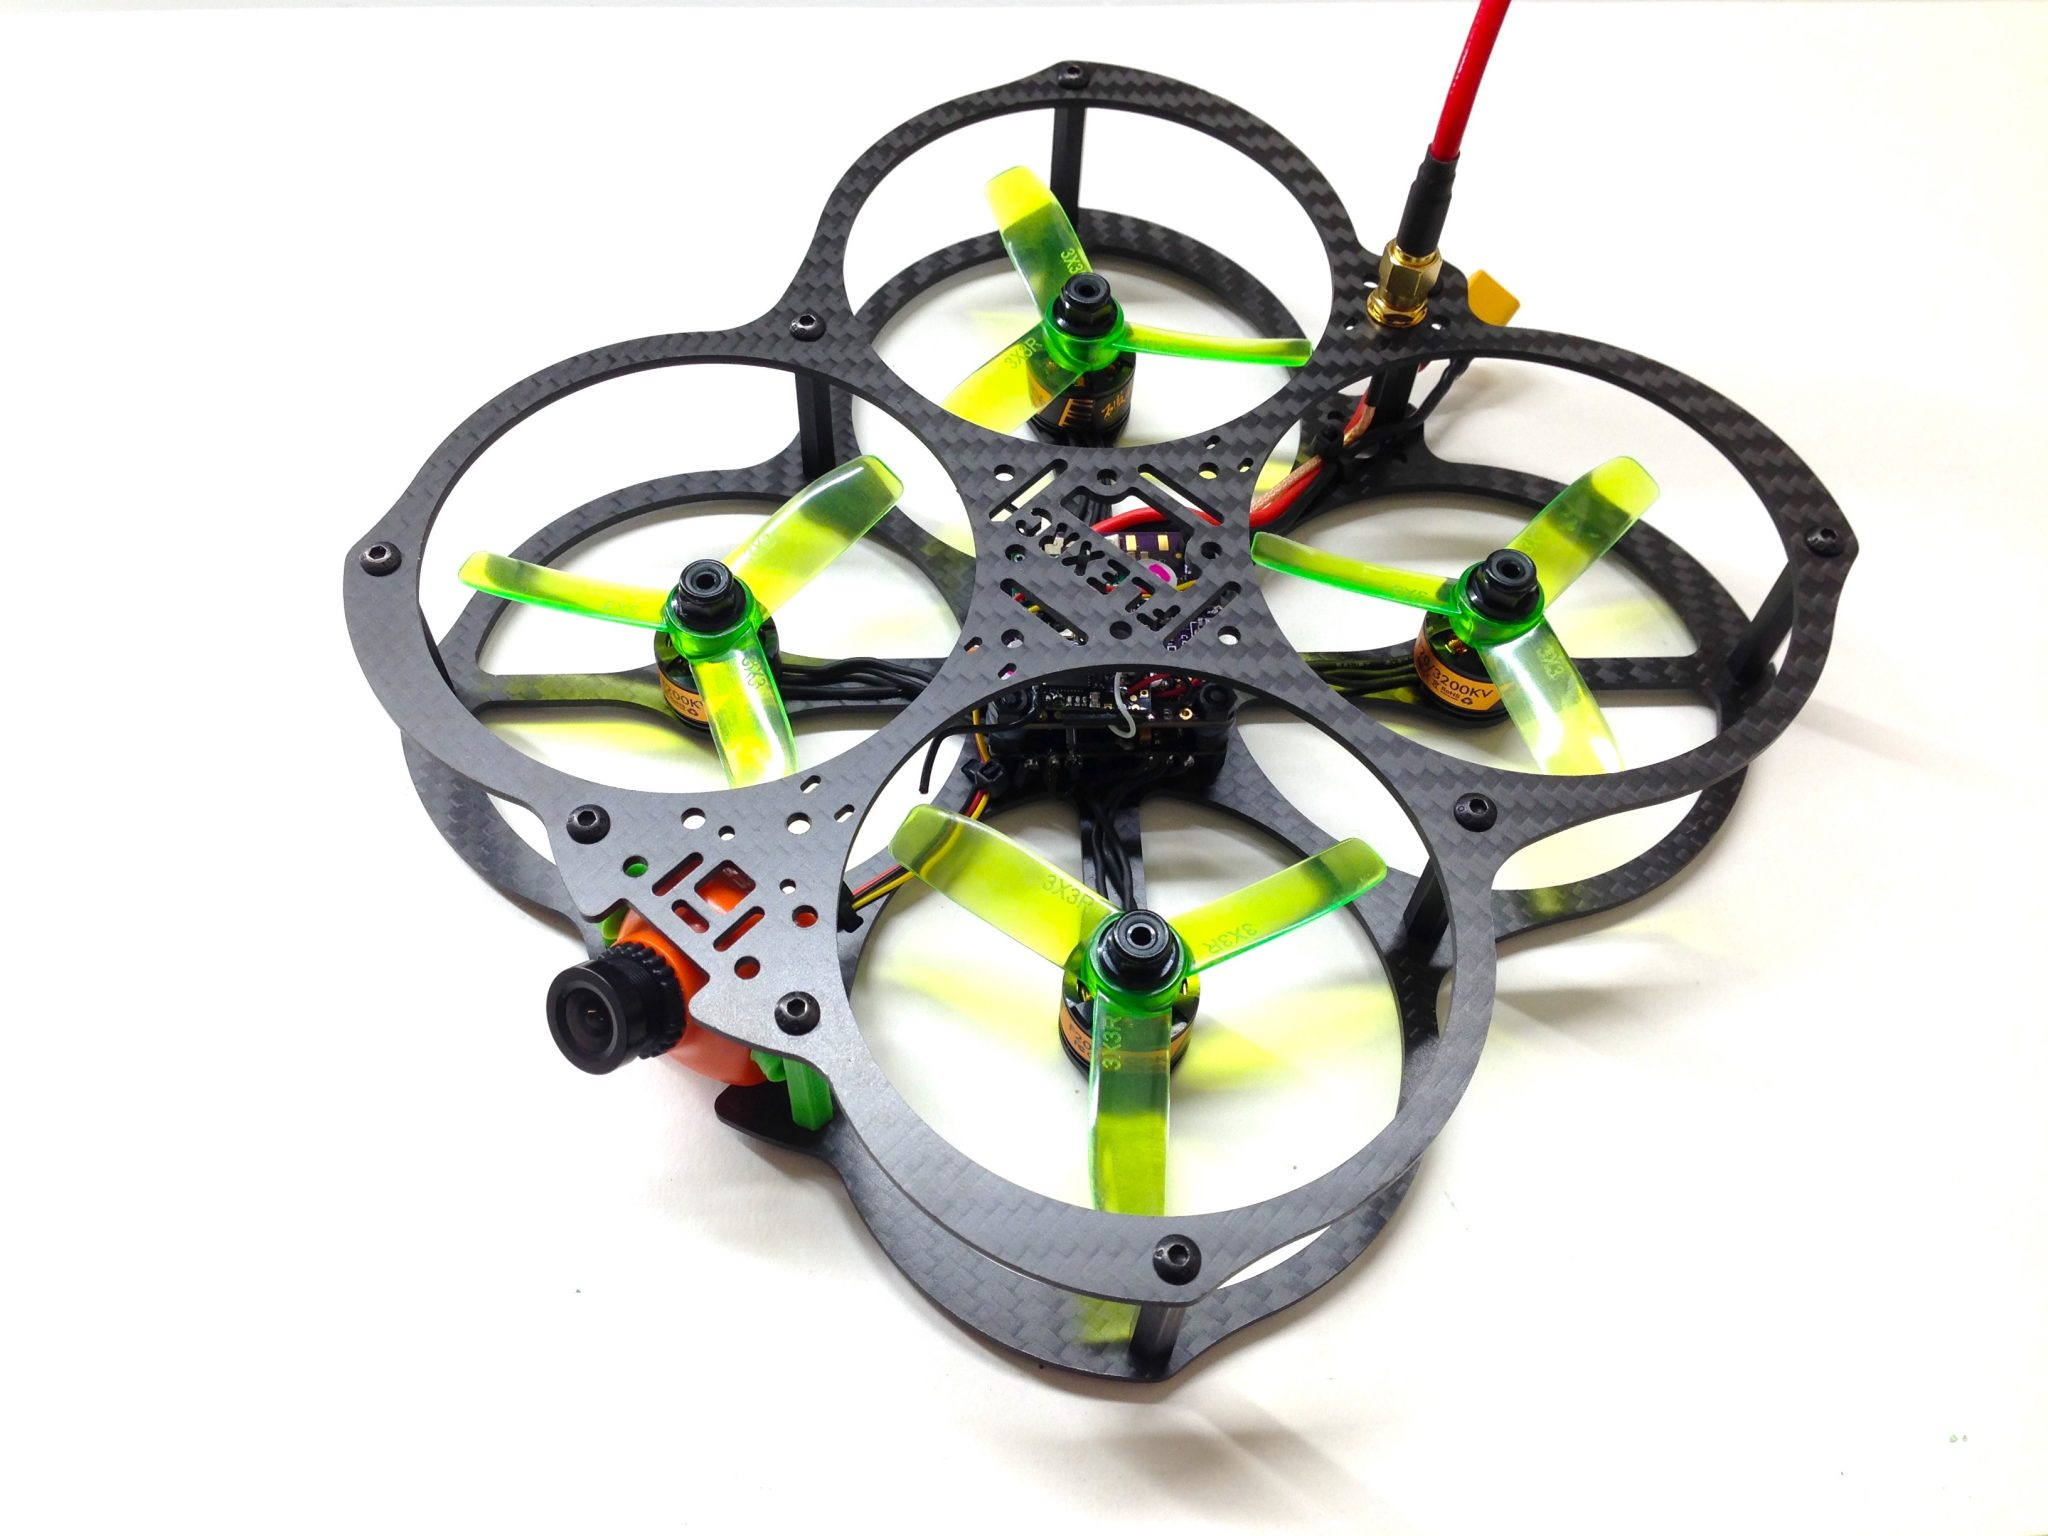 Owl - Universal Indoor and Outdoor FPV Quadcopter frame kit